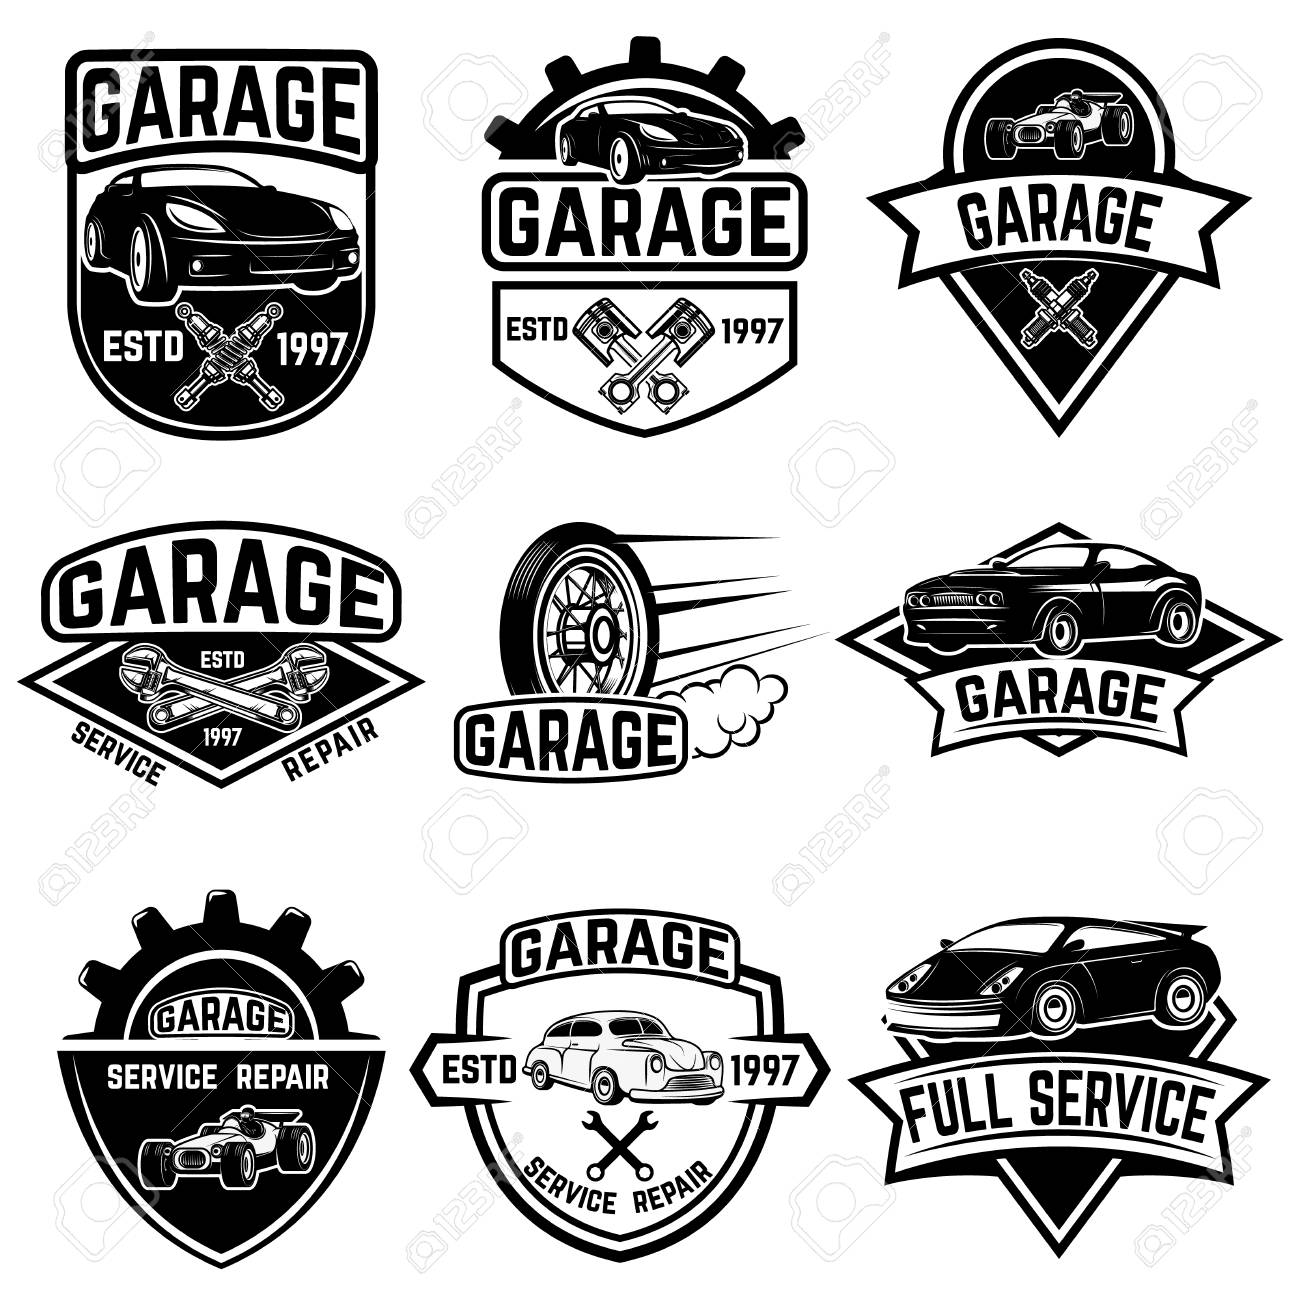 Set of vintage car service labels  Design elements for logo,